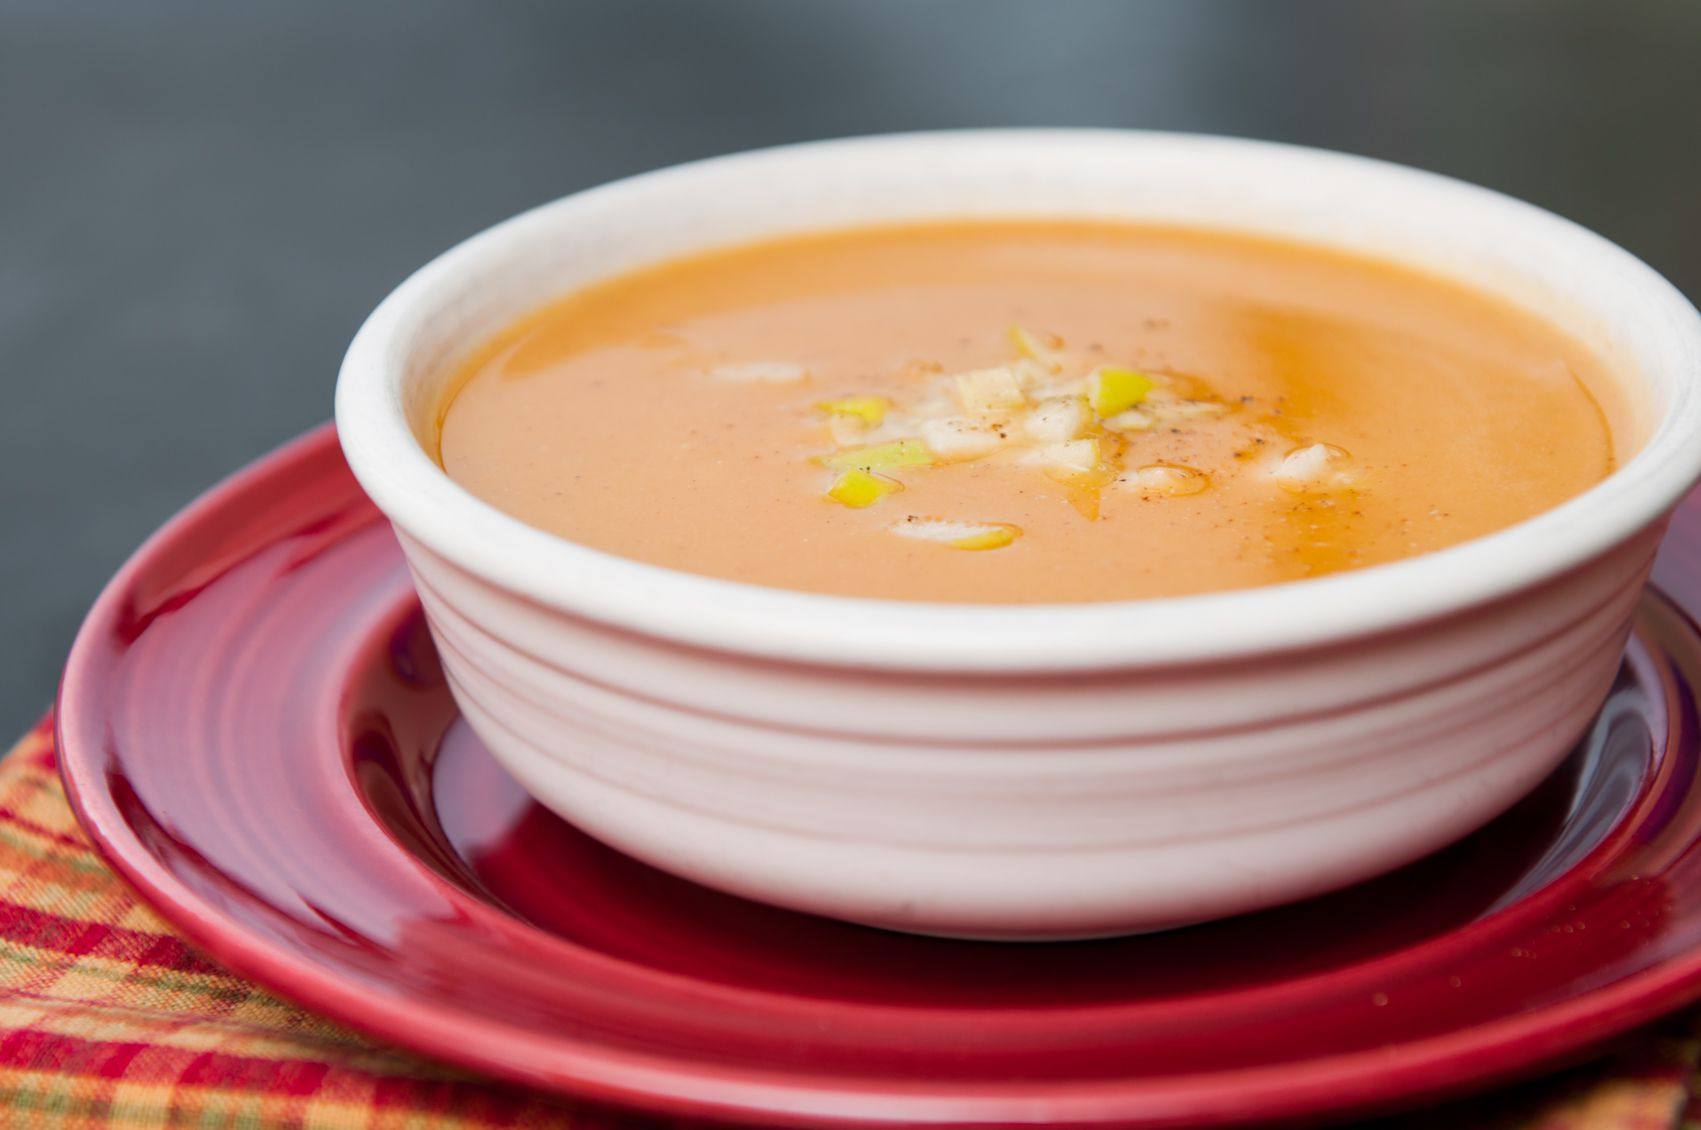 A bowl full of butternut squash soup topped with diced apples and pepper